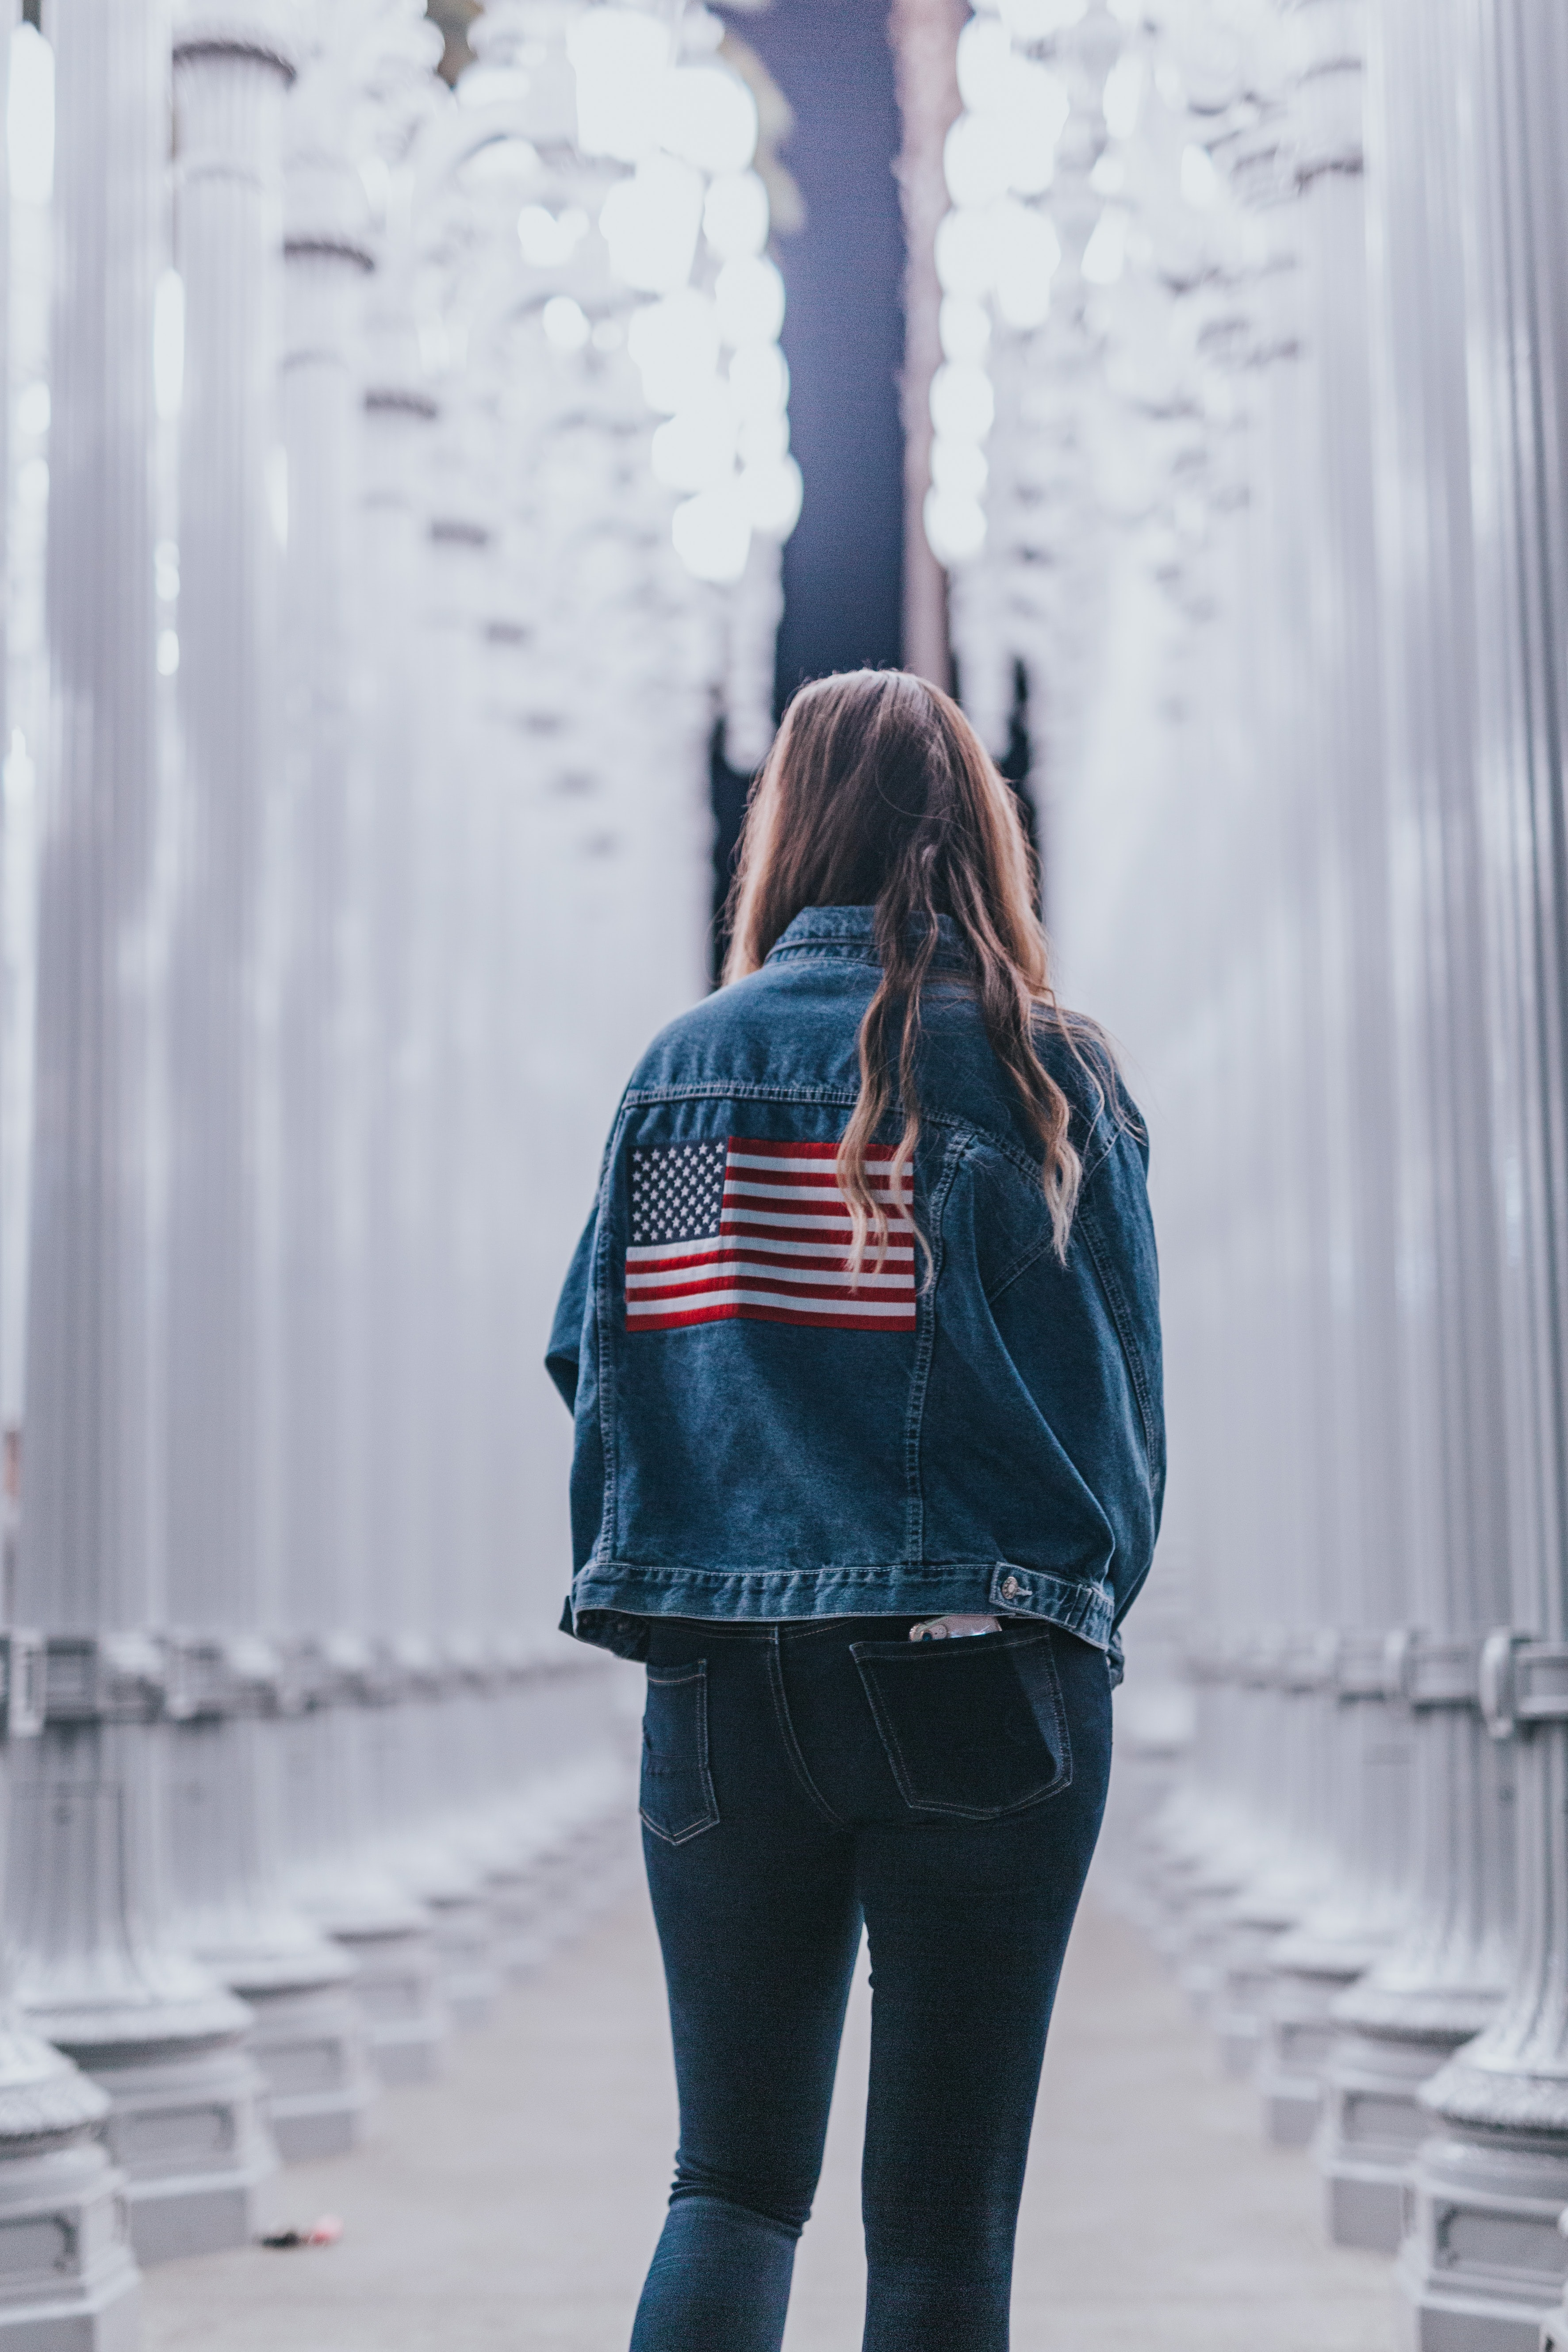 woman in blue denim jacket standing near pedestals